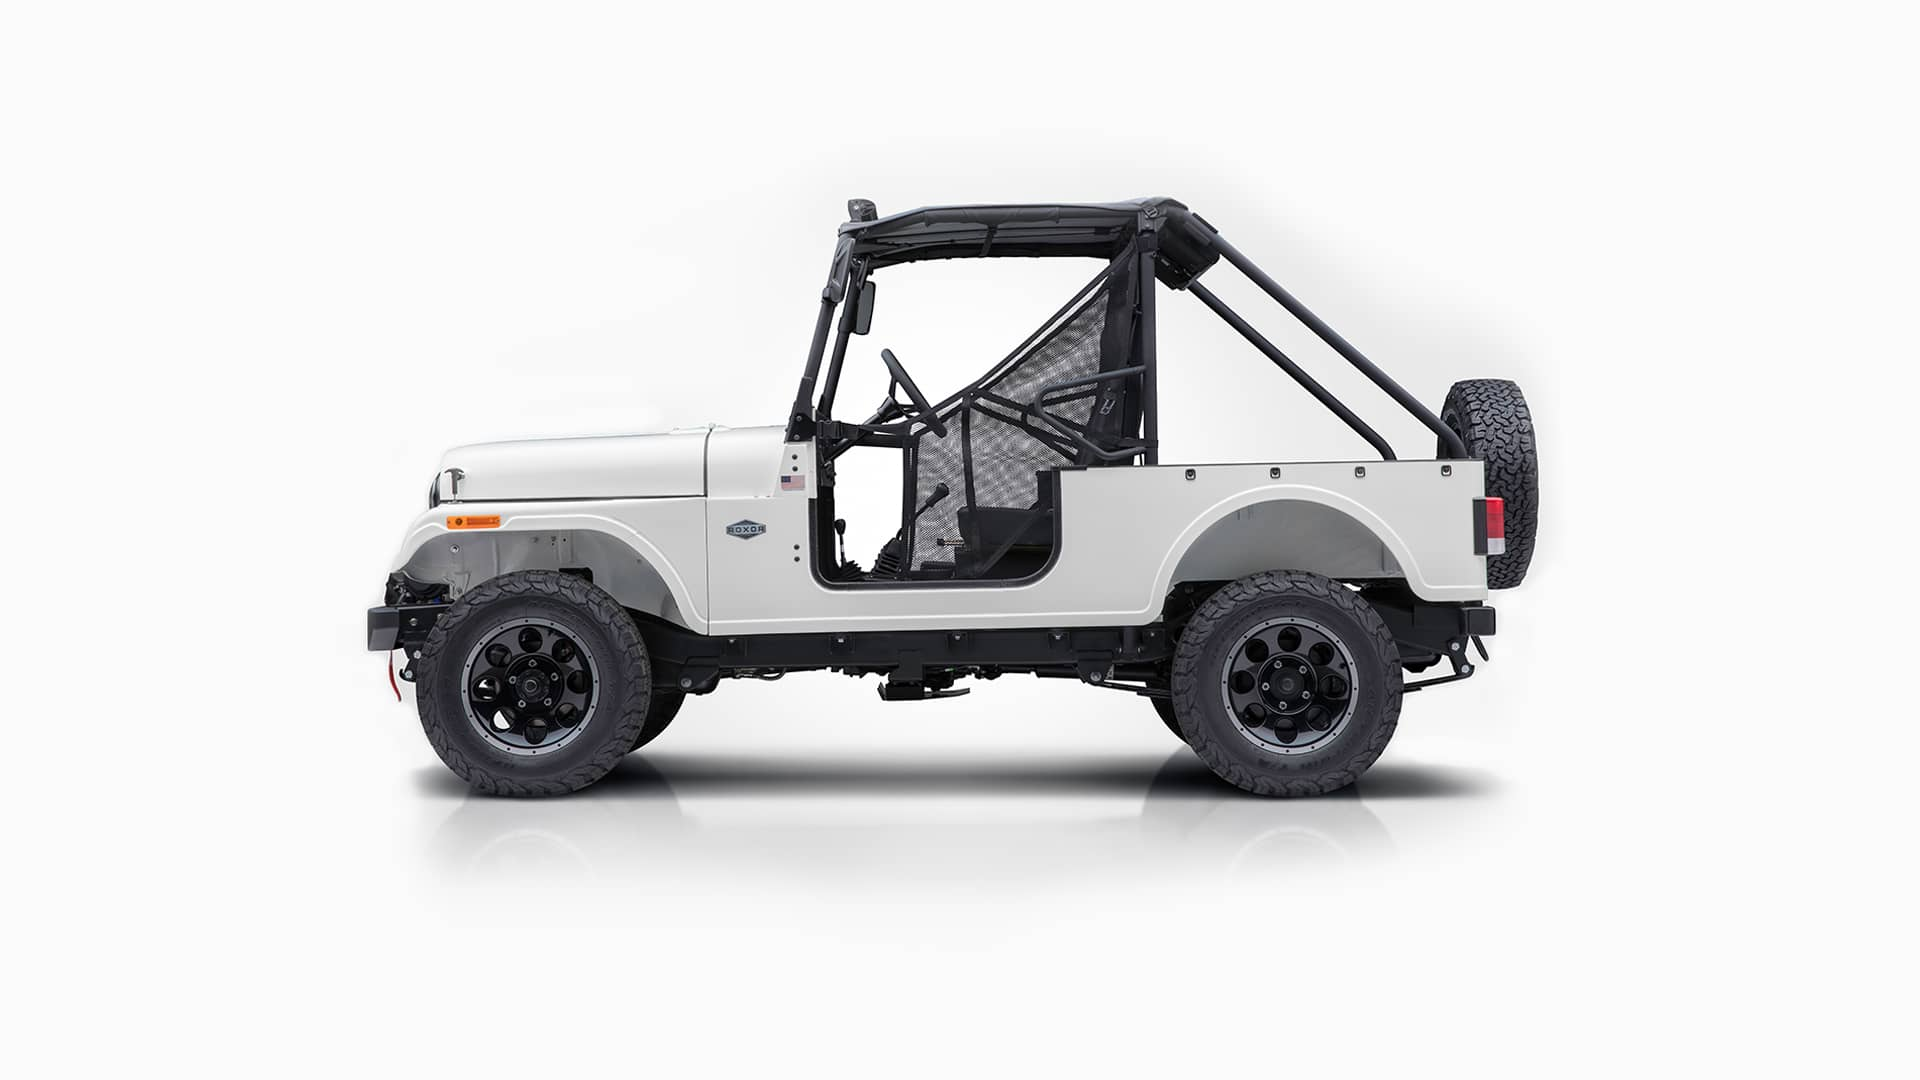 ROXOR Offroad   UTVs, Side by Sides, SxS Utility Vehicles ...